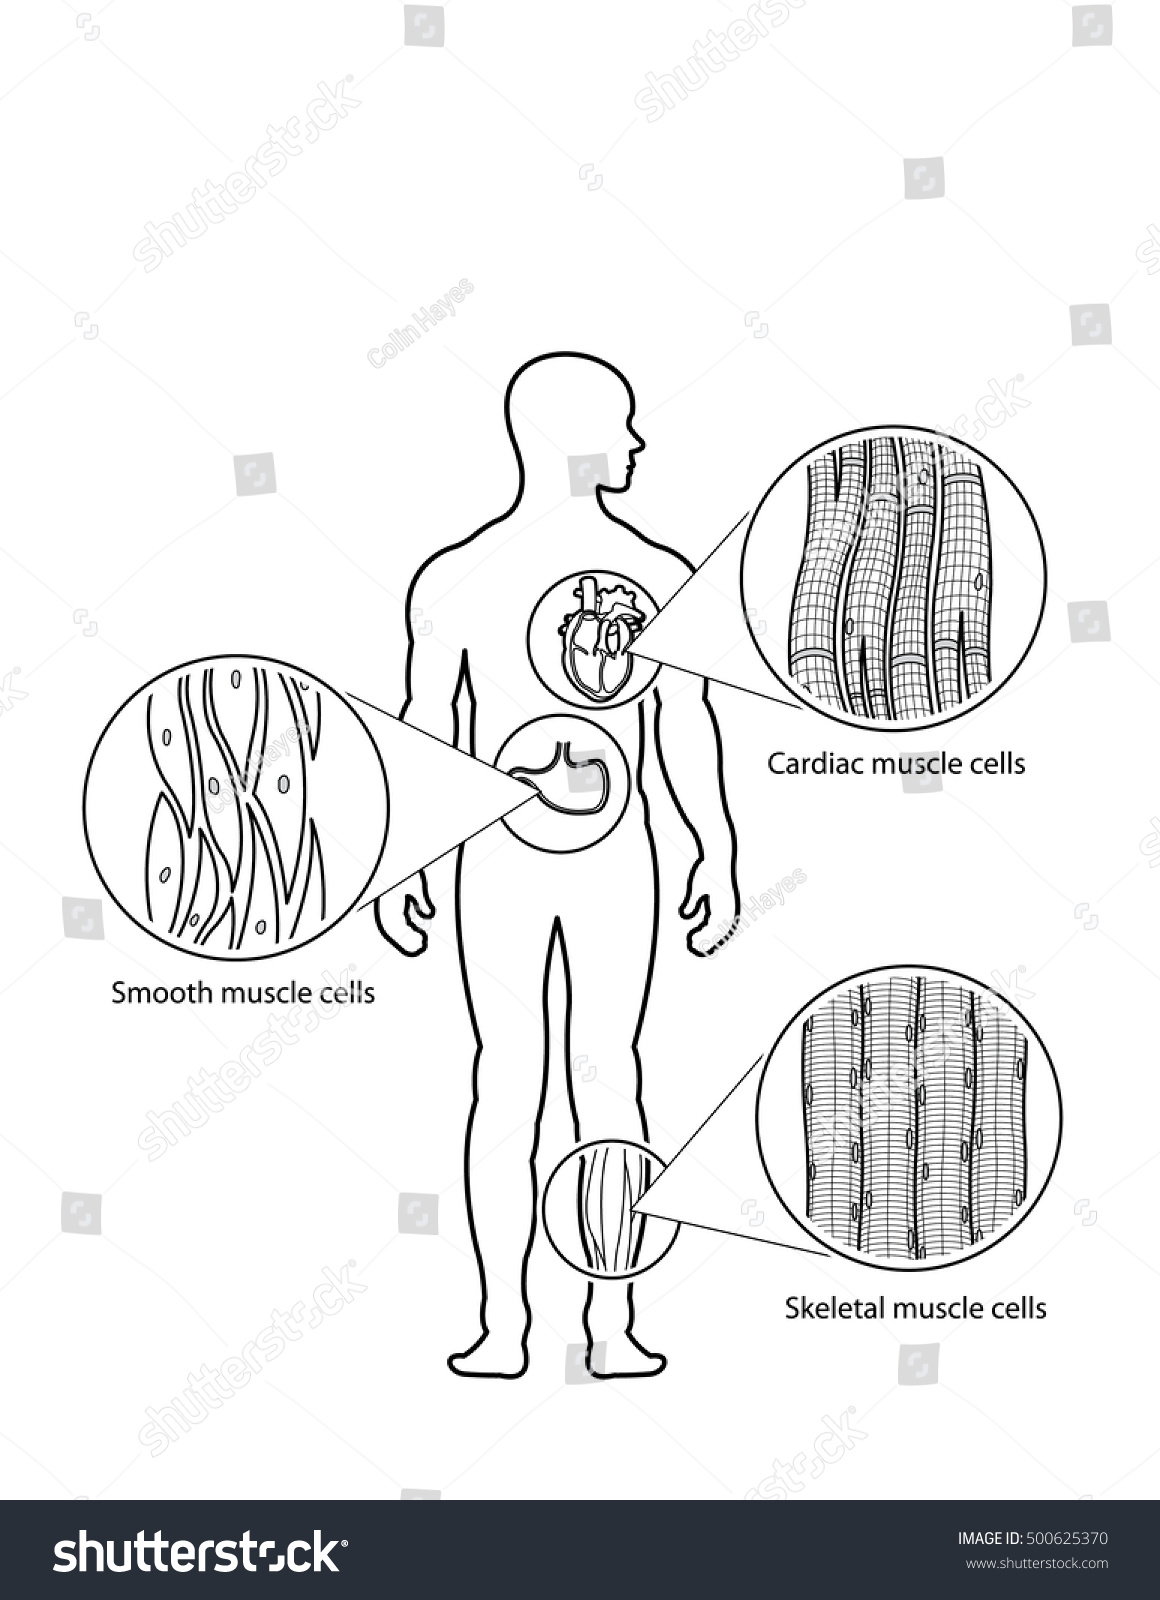 Human Muscle Cell Types Cardiac Skeletal Stock Vector Royalty Free